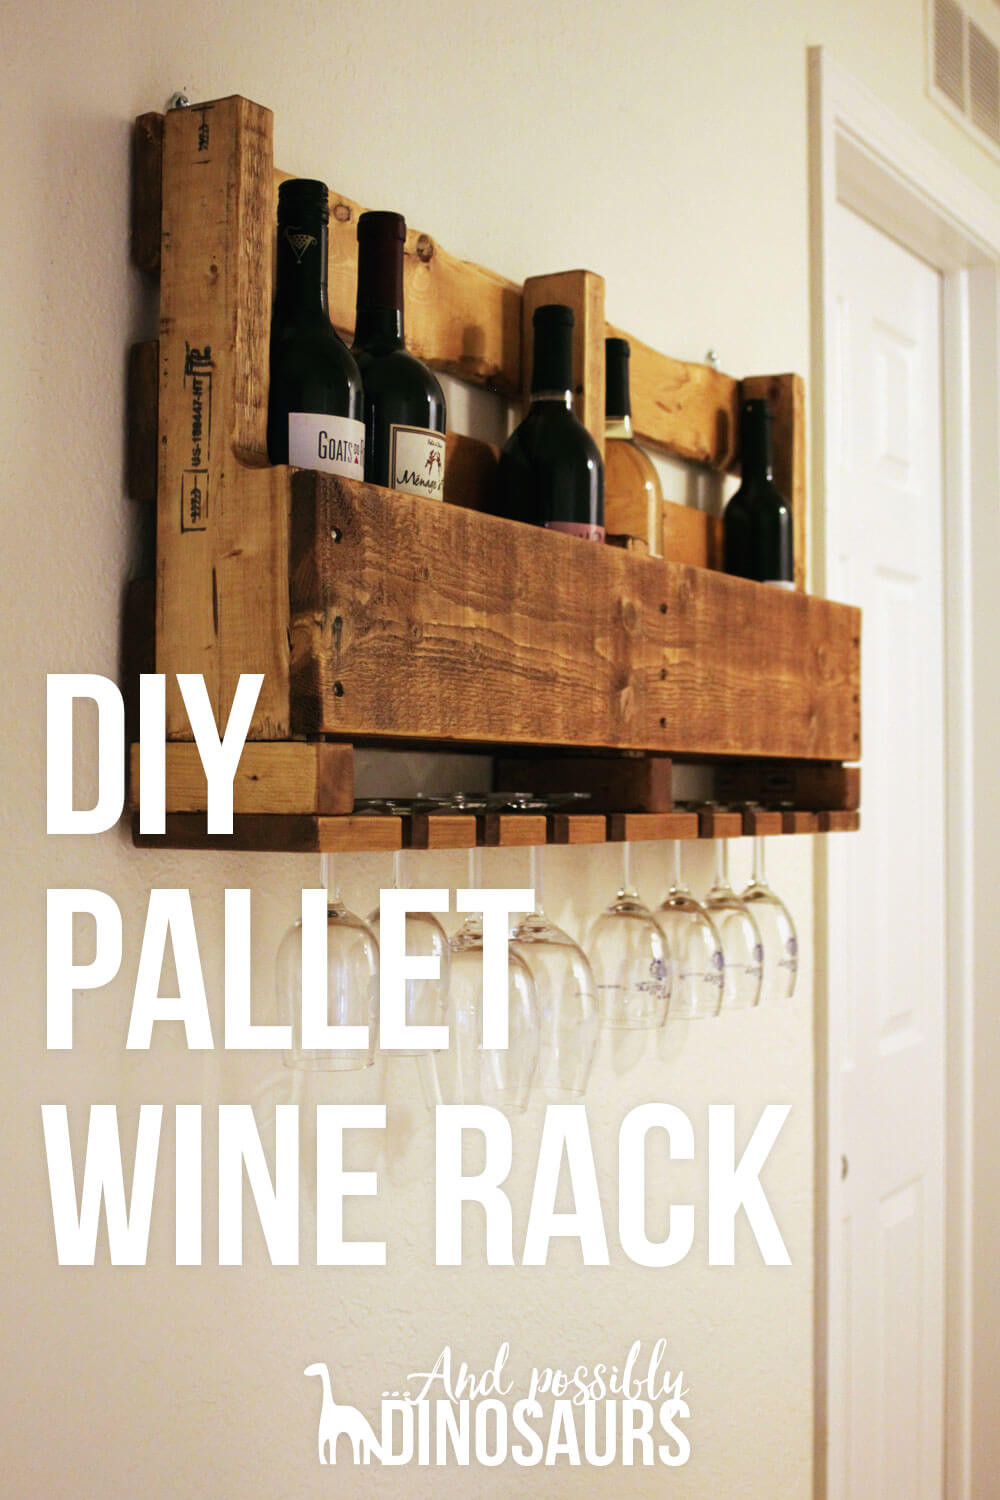 Best ideas about DIY Wine Rack Pallet . Save or Pin DIY Wine Rack from a Pallet And Possibly Dinosaurs Now.